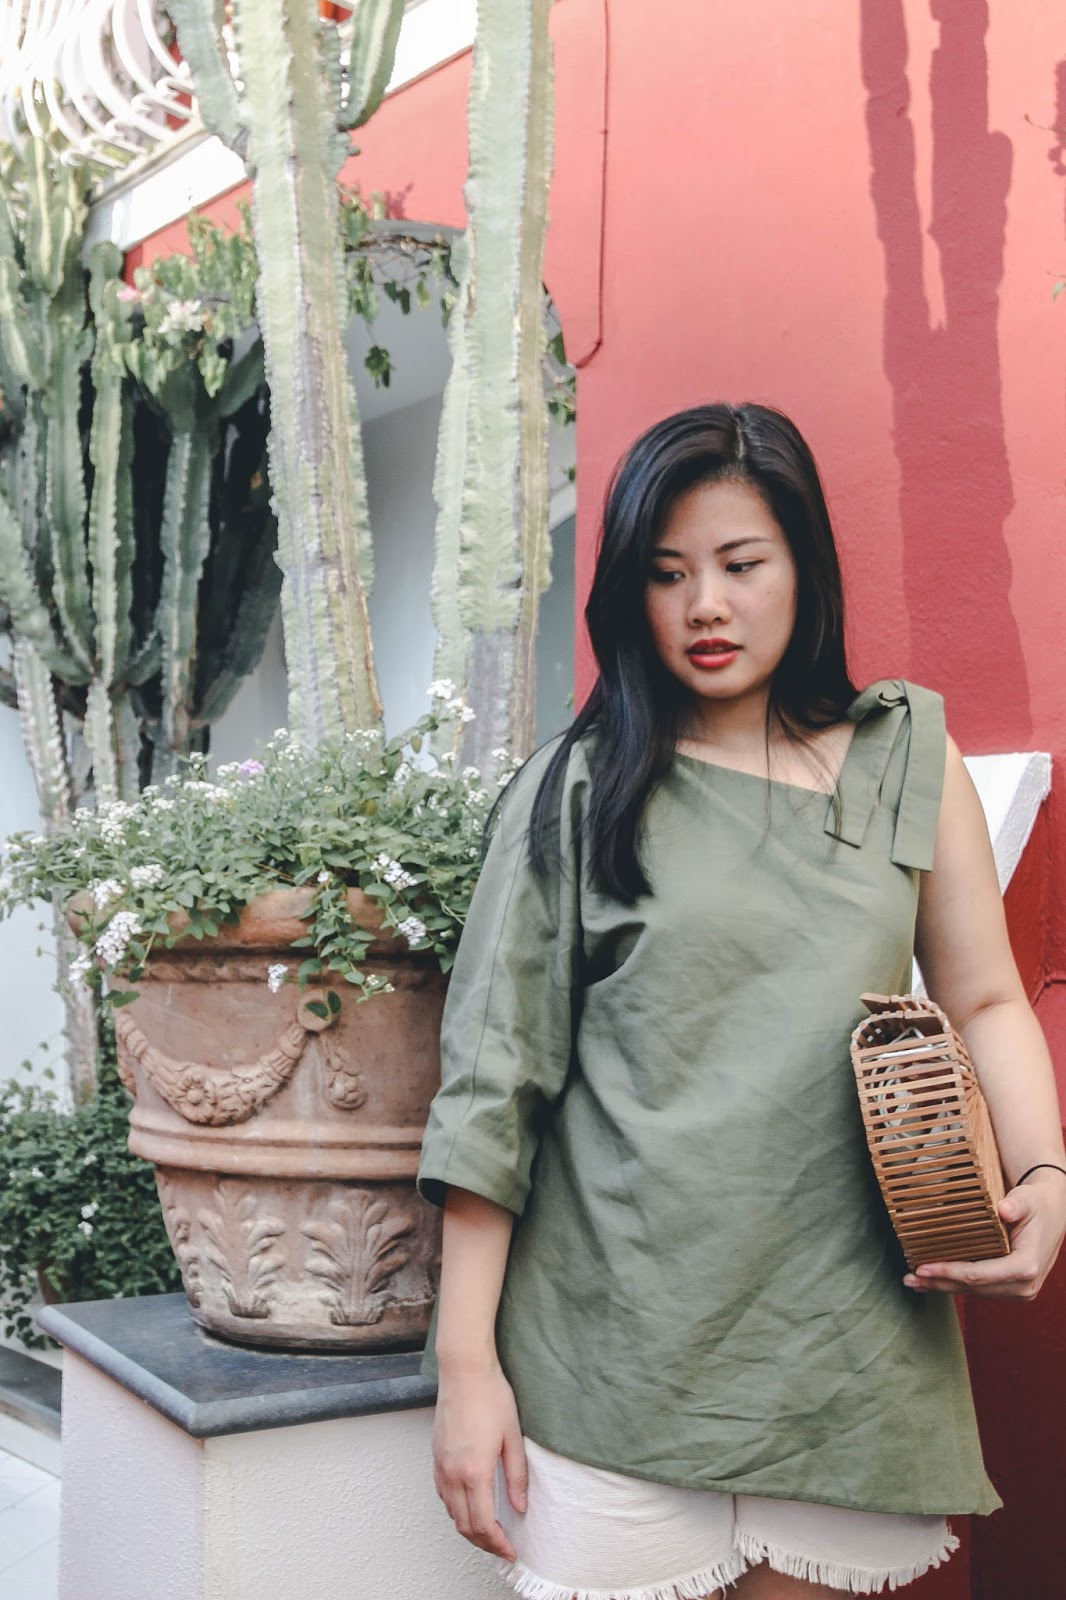 singapore blogger style look book street fashion outfit positano italy europe summer holiday photography photographer